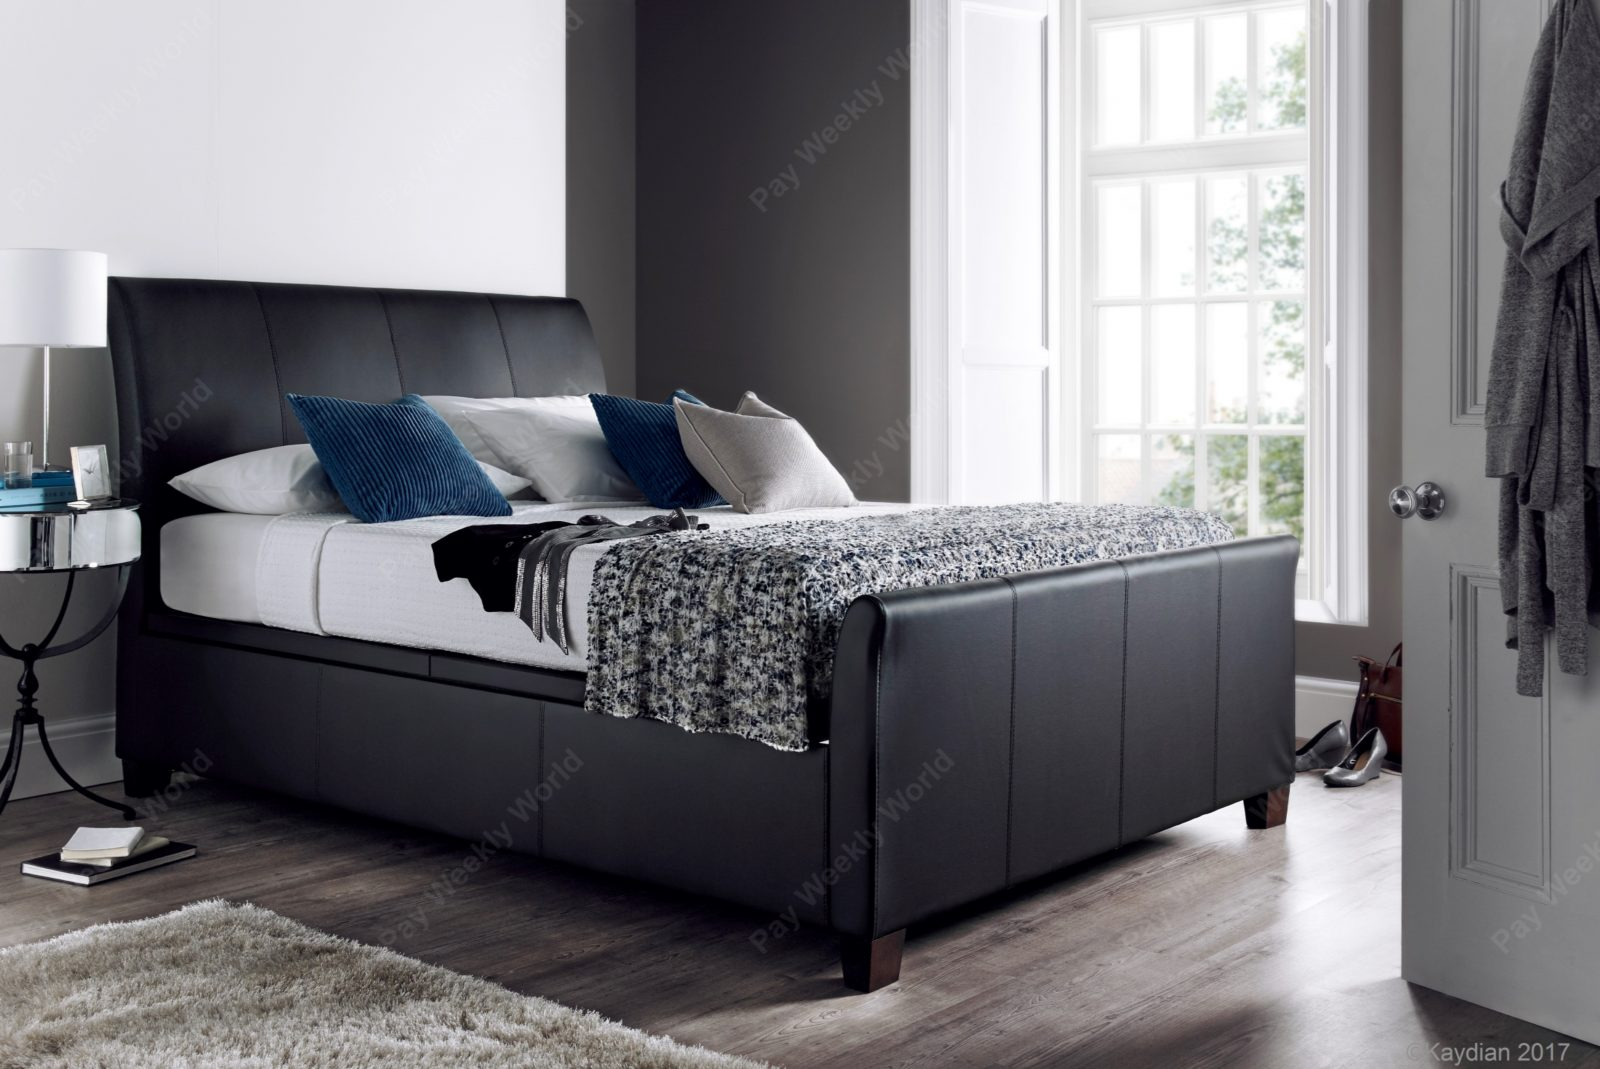 Allendale Ottoman Black Leather Bed Frame – King